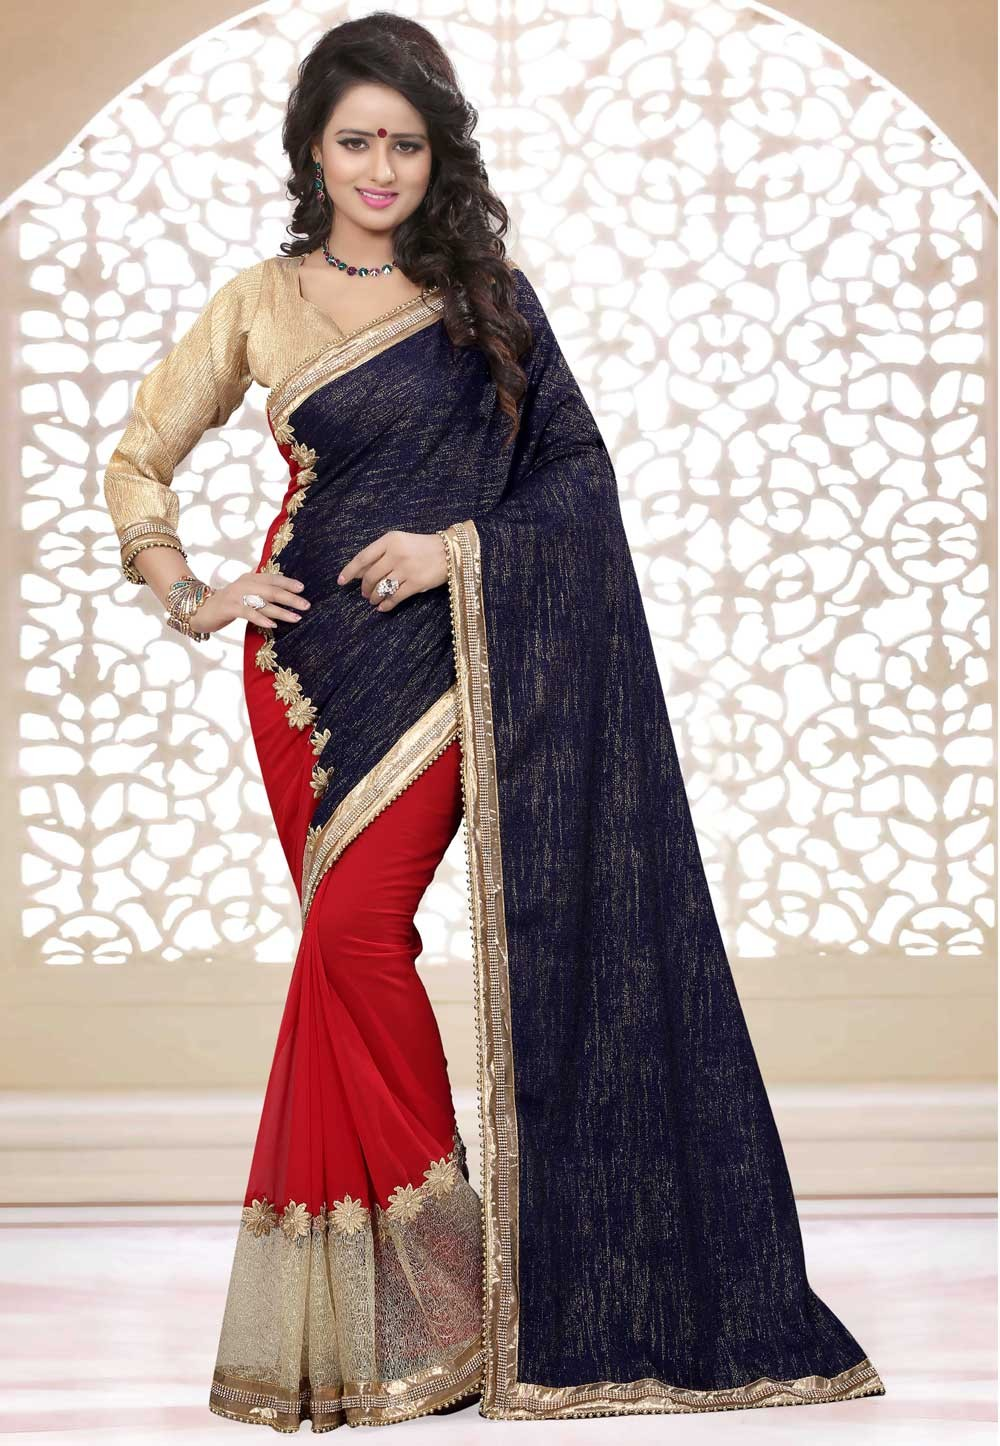 Women's Attractive Looking Blue,Red Color Georgette,Velvet Saree